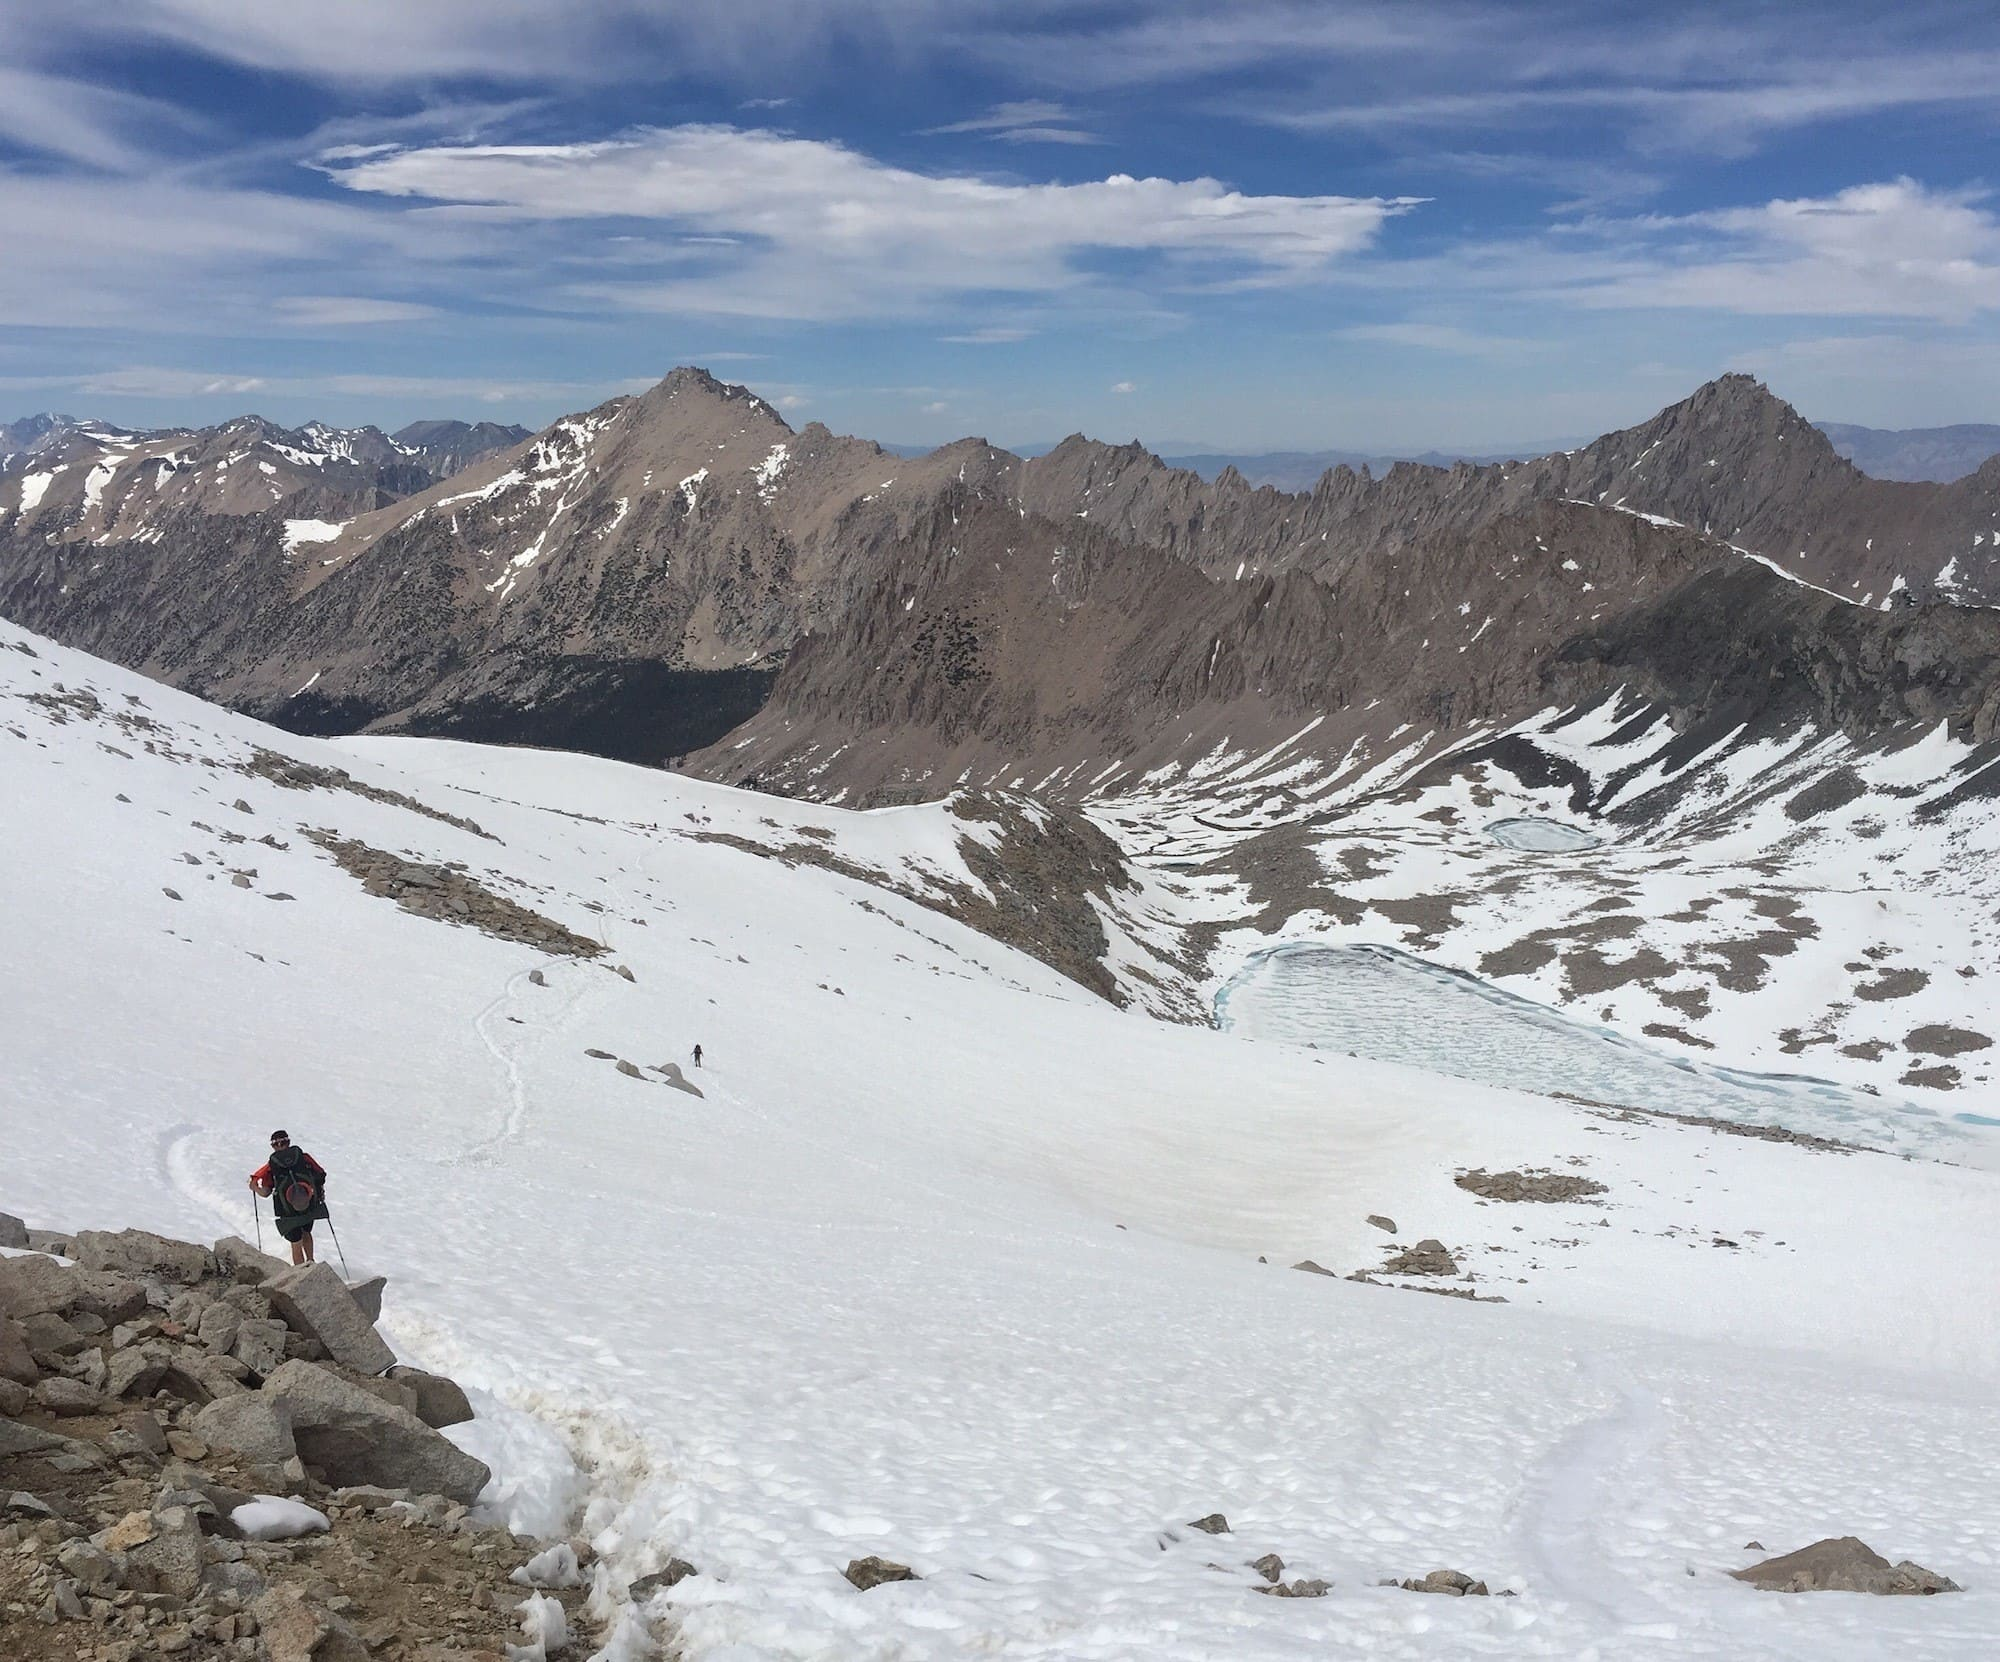 Thinking about thru hiking the PCT? Get 11 tips from a solo female hiker who successfully completed all 2,650 miles of the Pacific Crest Trail.